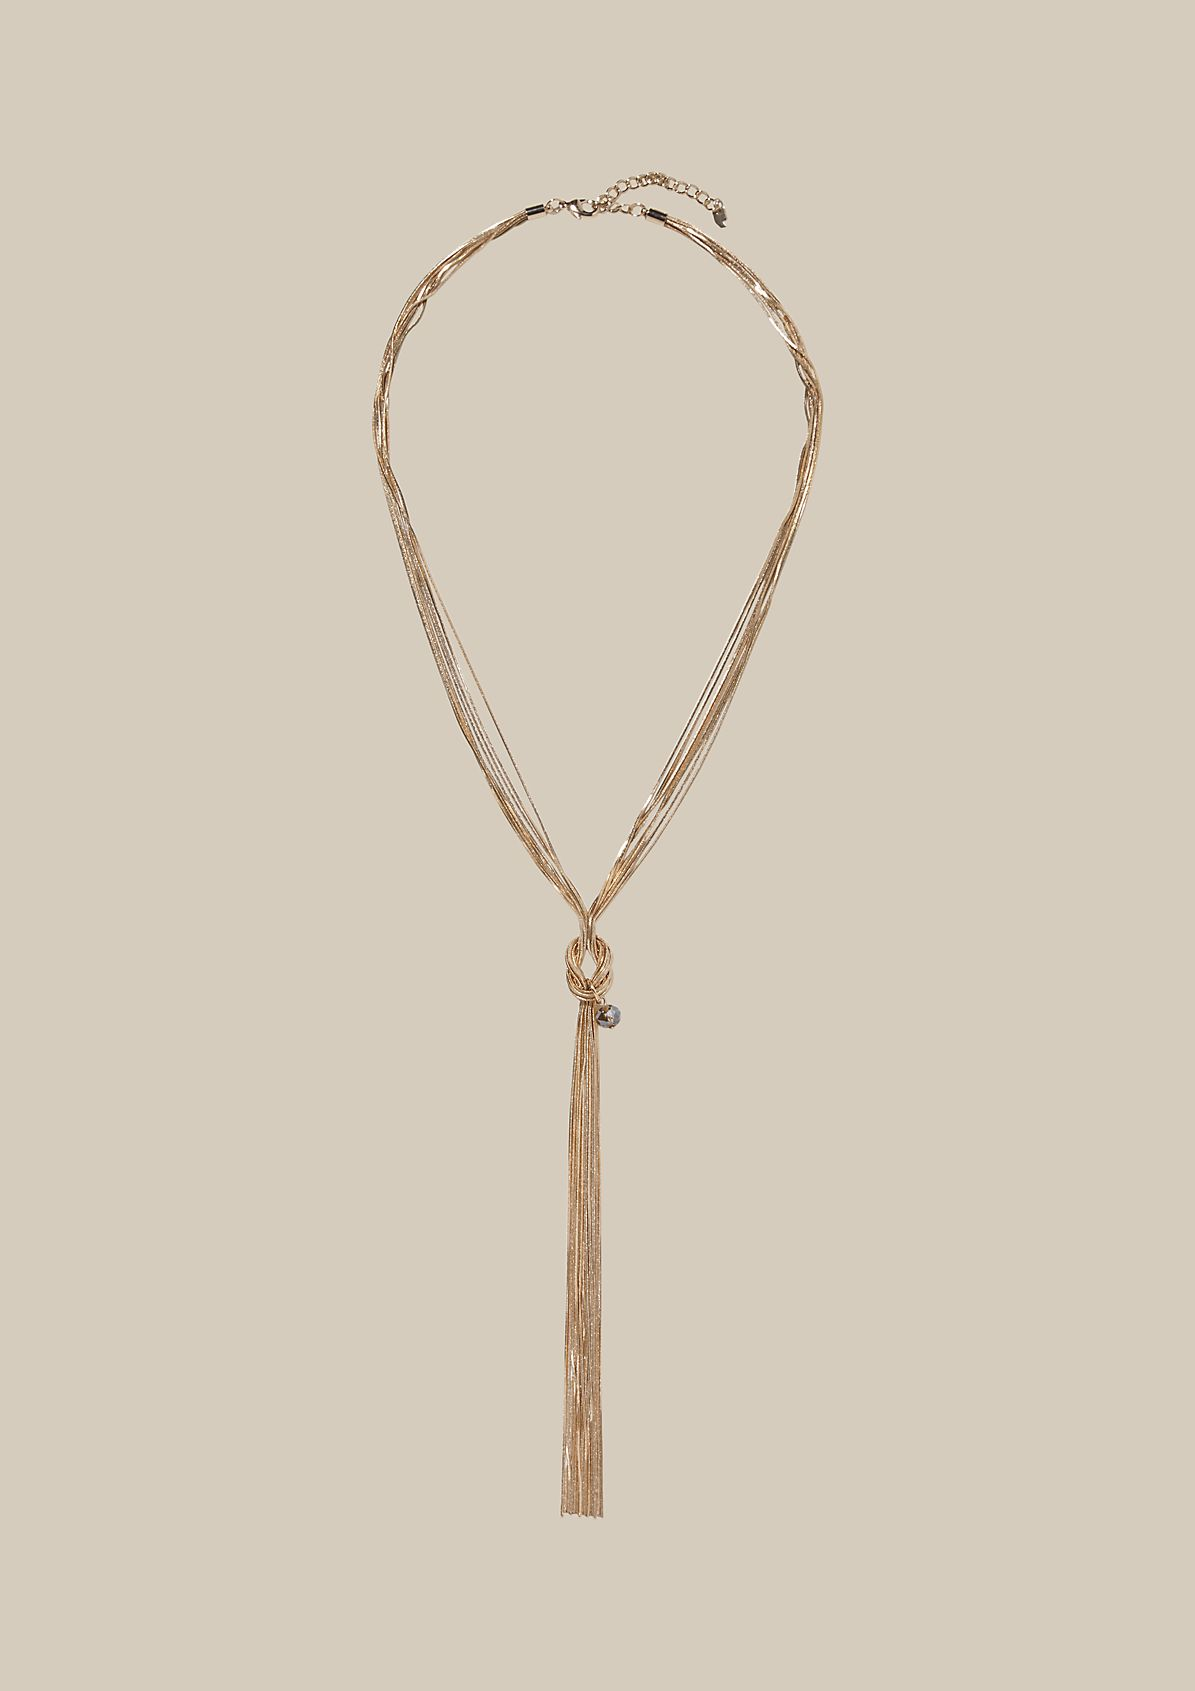 Long necklace with a decorative knot from s.Oliver